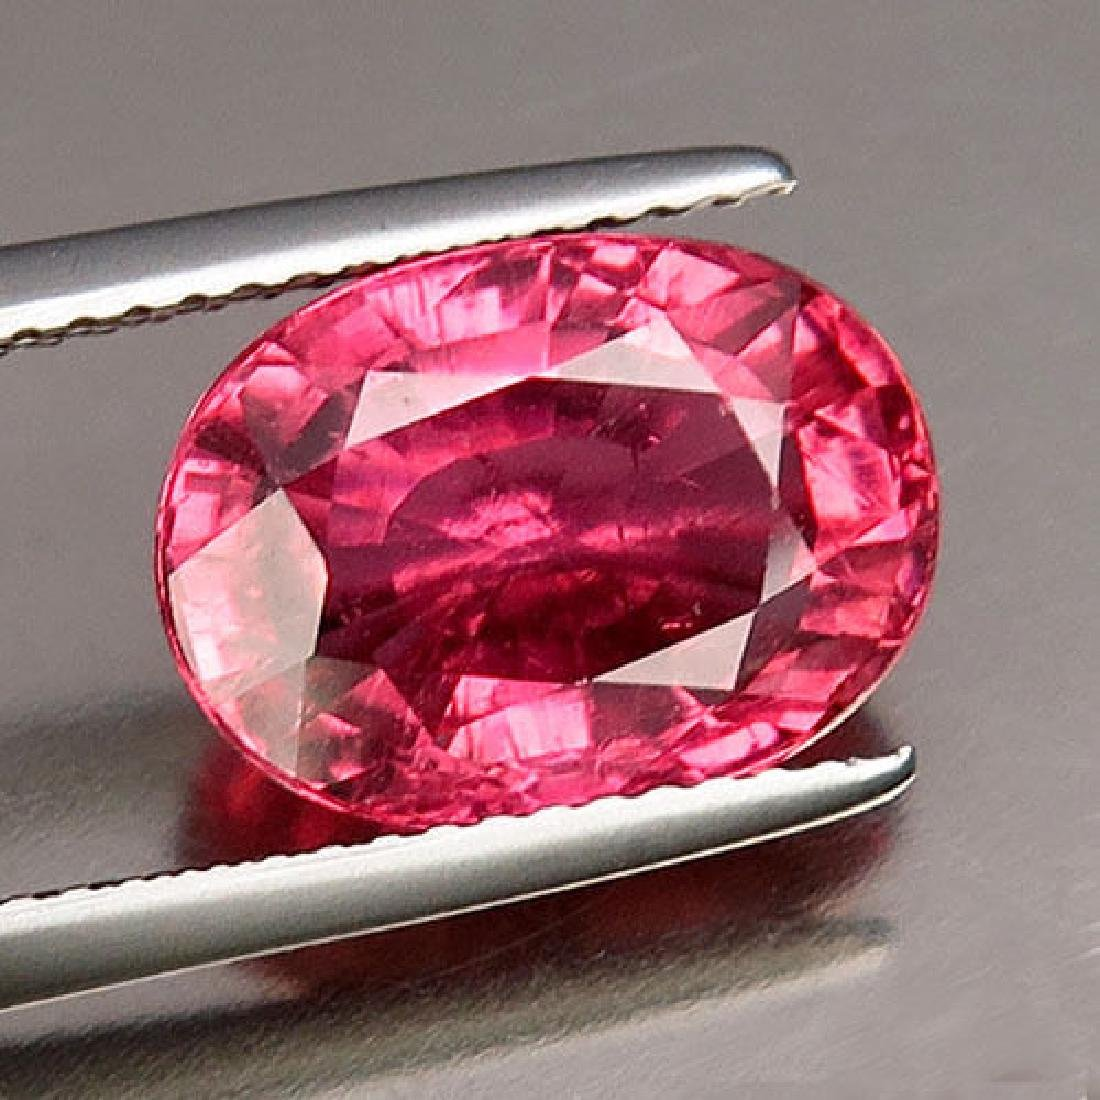 Natural Hot Pink Tourmaline 5.19 ct - no Treatment